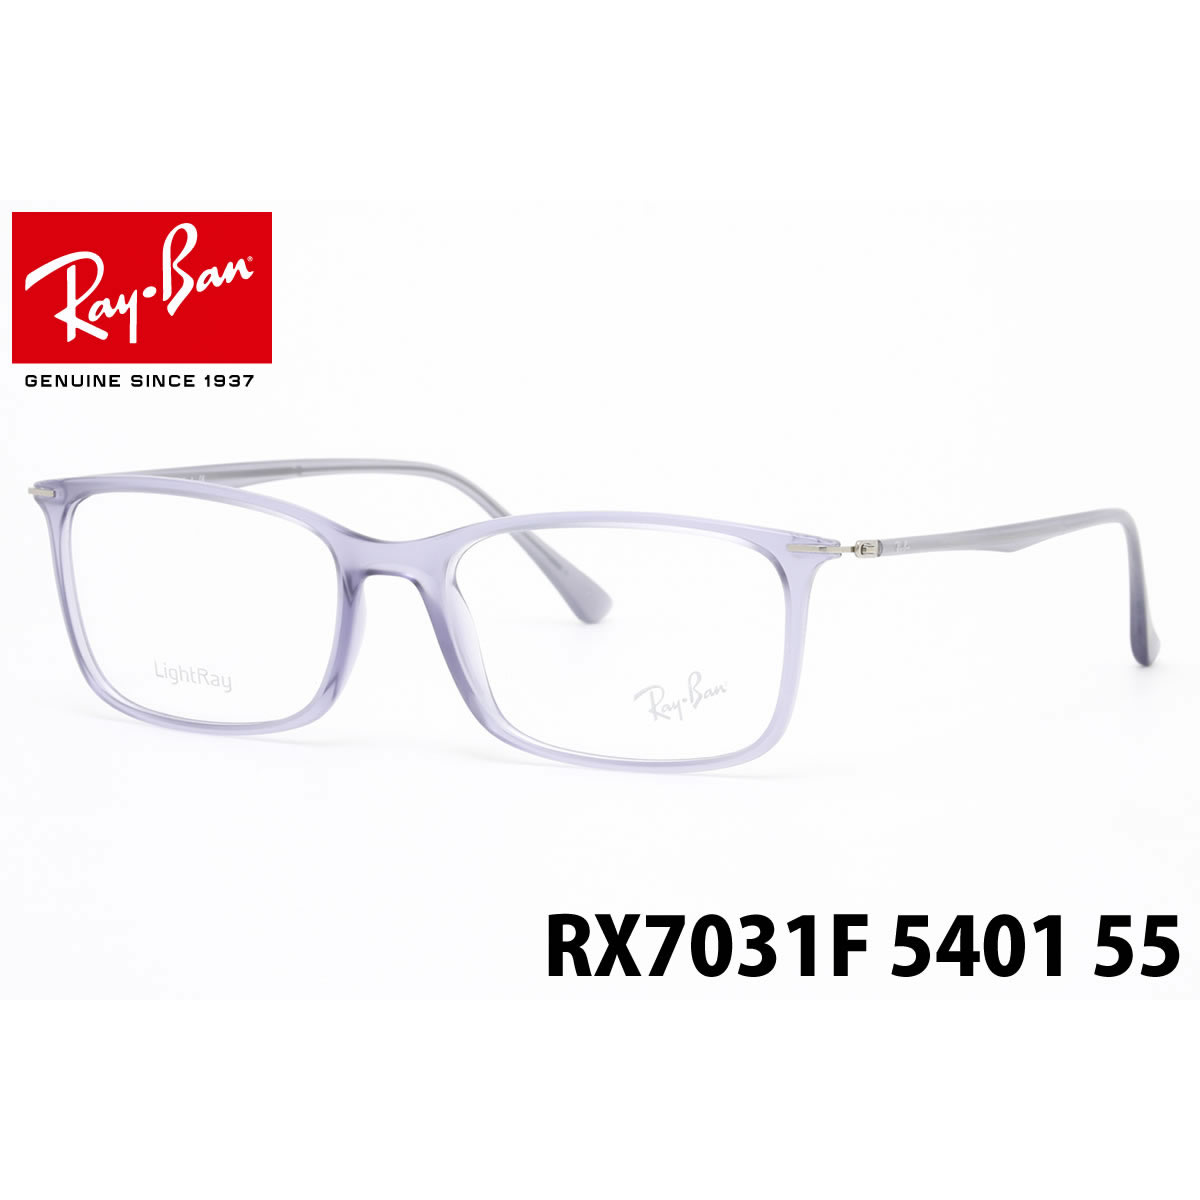 6c704a15056 Ray-Ban technical center light lei glasses frame Ray-Ban RX7031F 5401 55  size Ray-Ban RAYBAN Tech LightRay men gap Dis